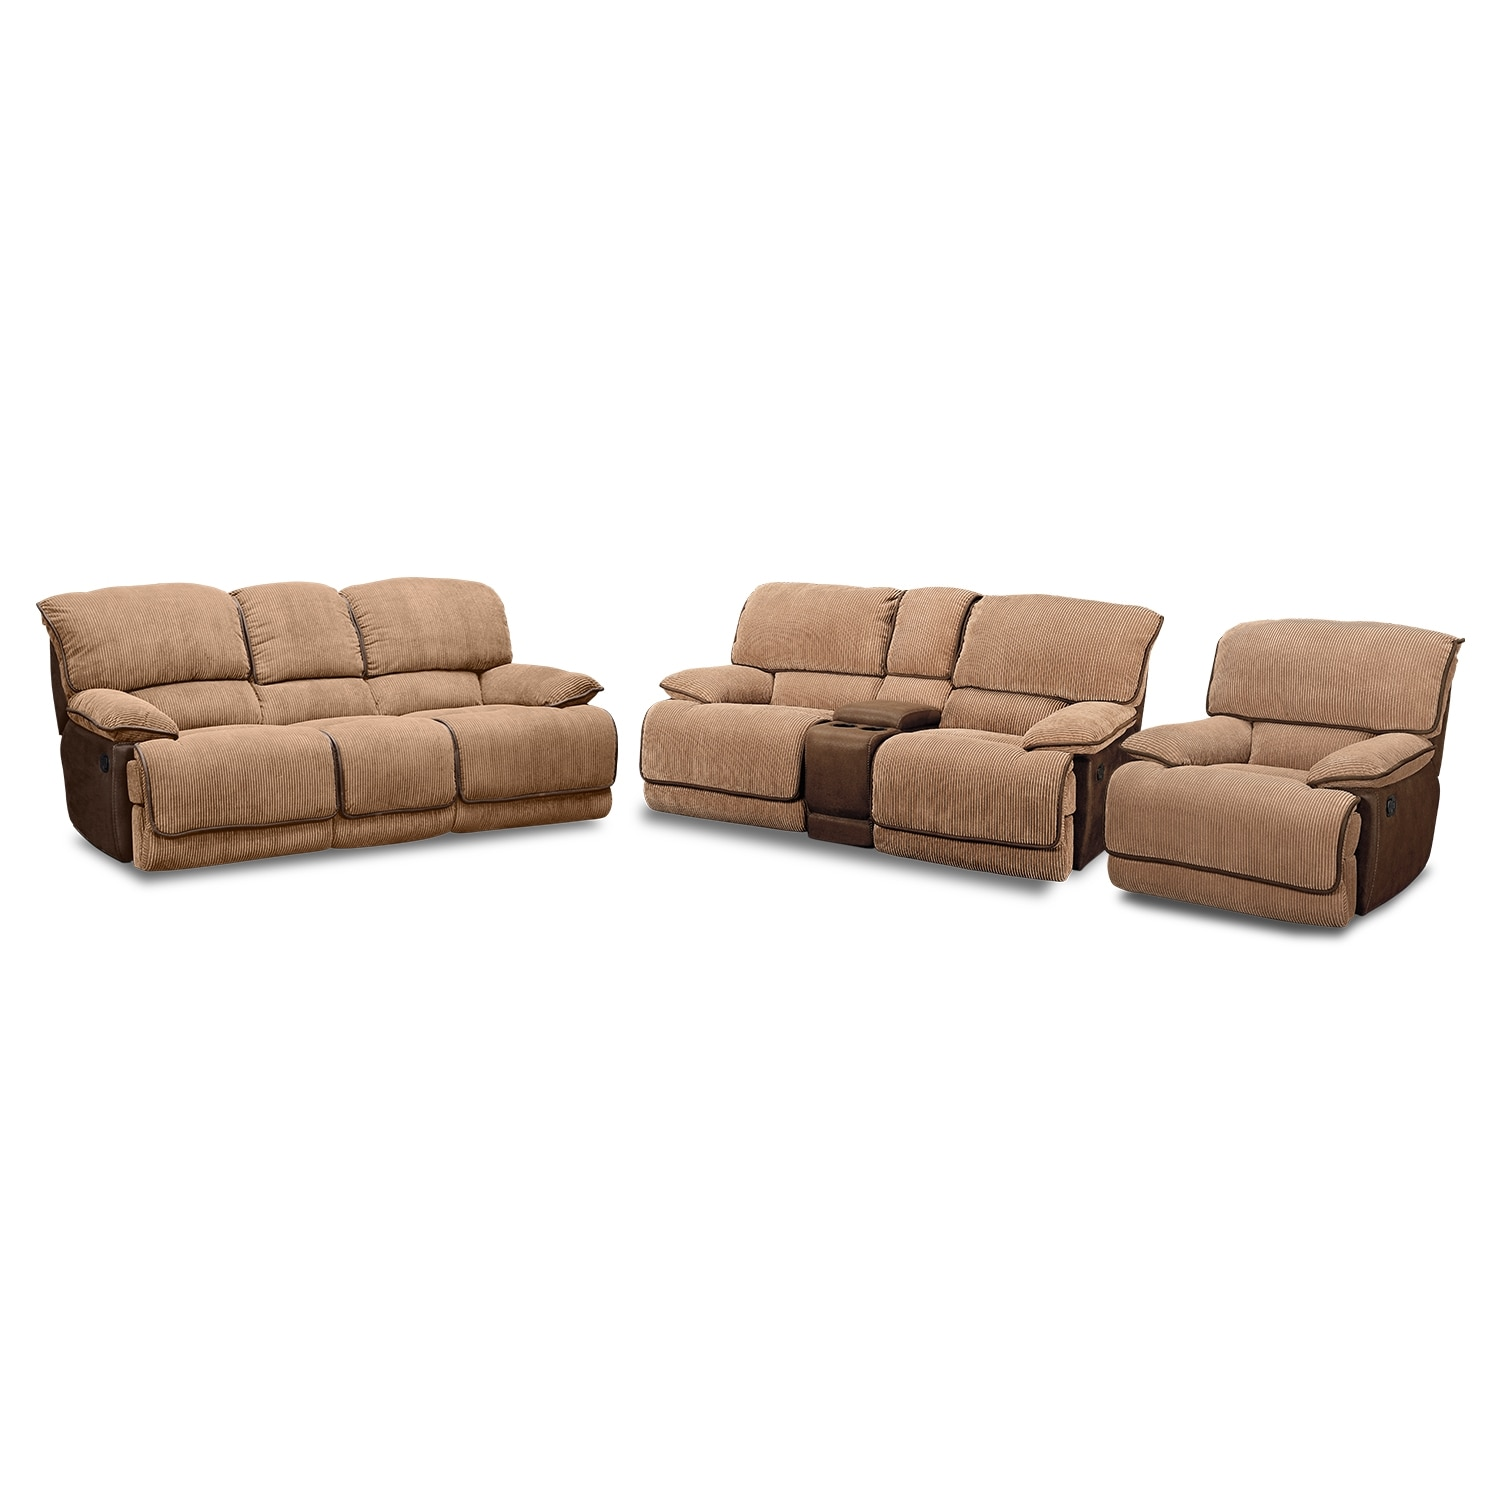 Living Room Furniture - Laguna Reclining Sofa, Loveseat and Glider Recliner Set - Camel